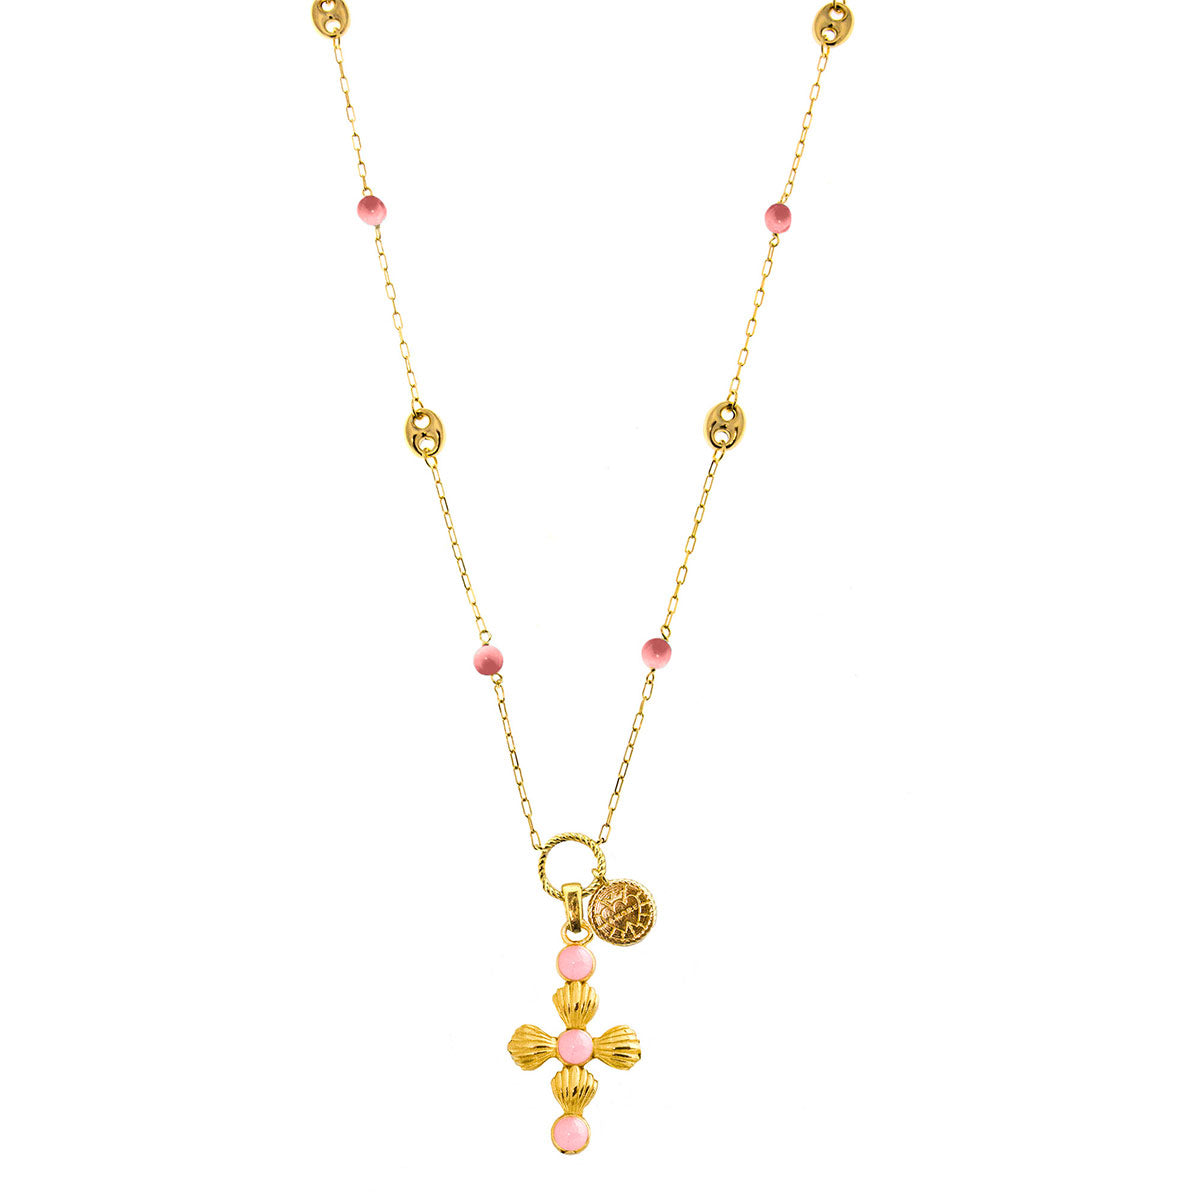 Necklaces - Necklace Cross HOLY-STER - 1 | Rue des Mille